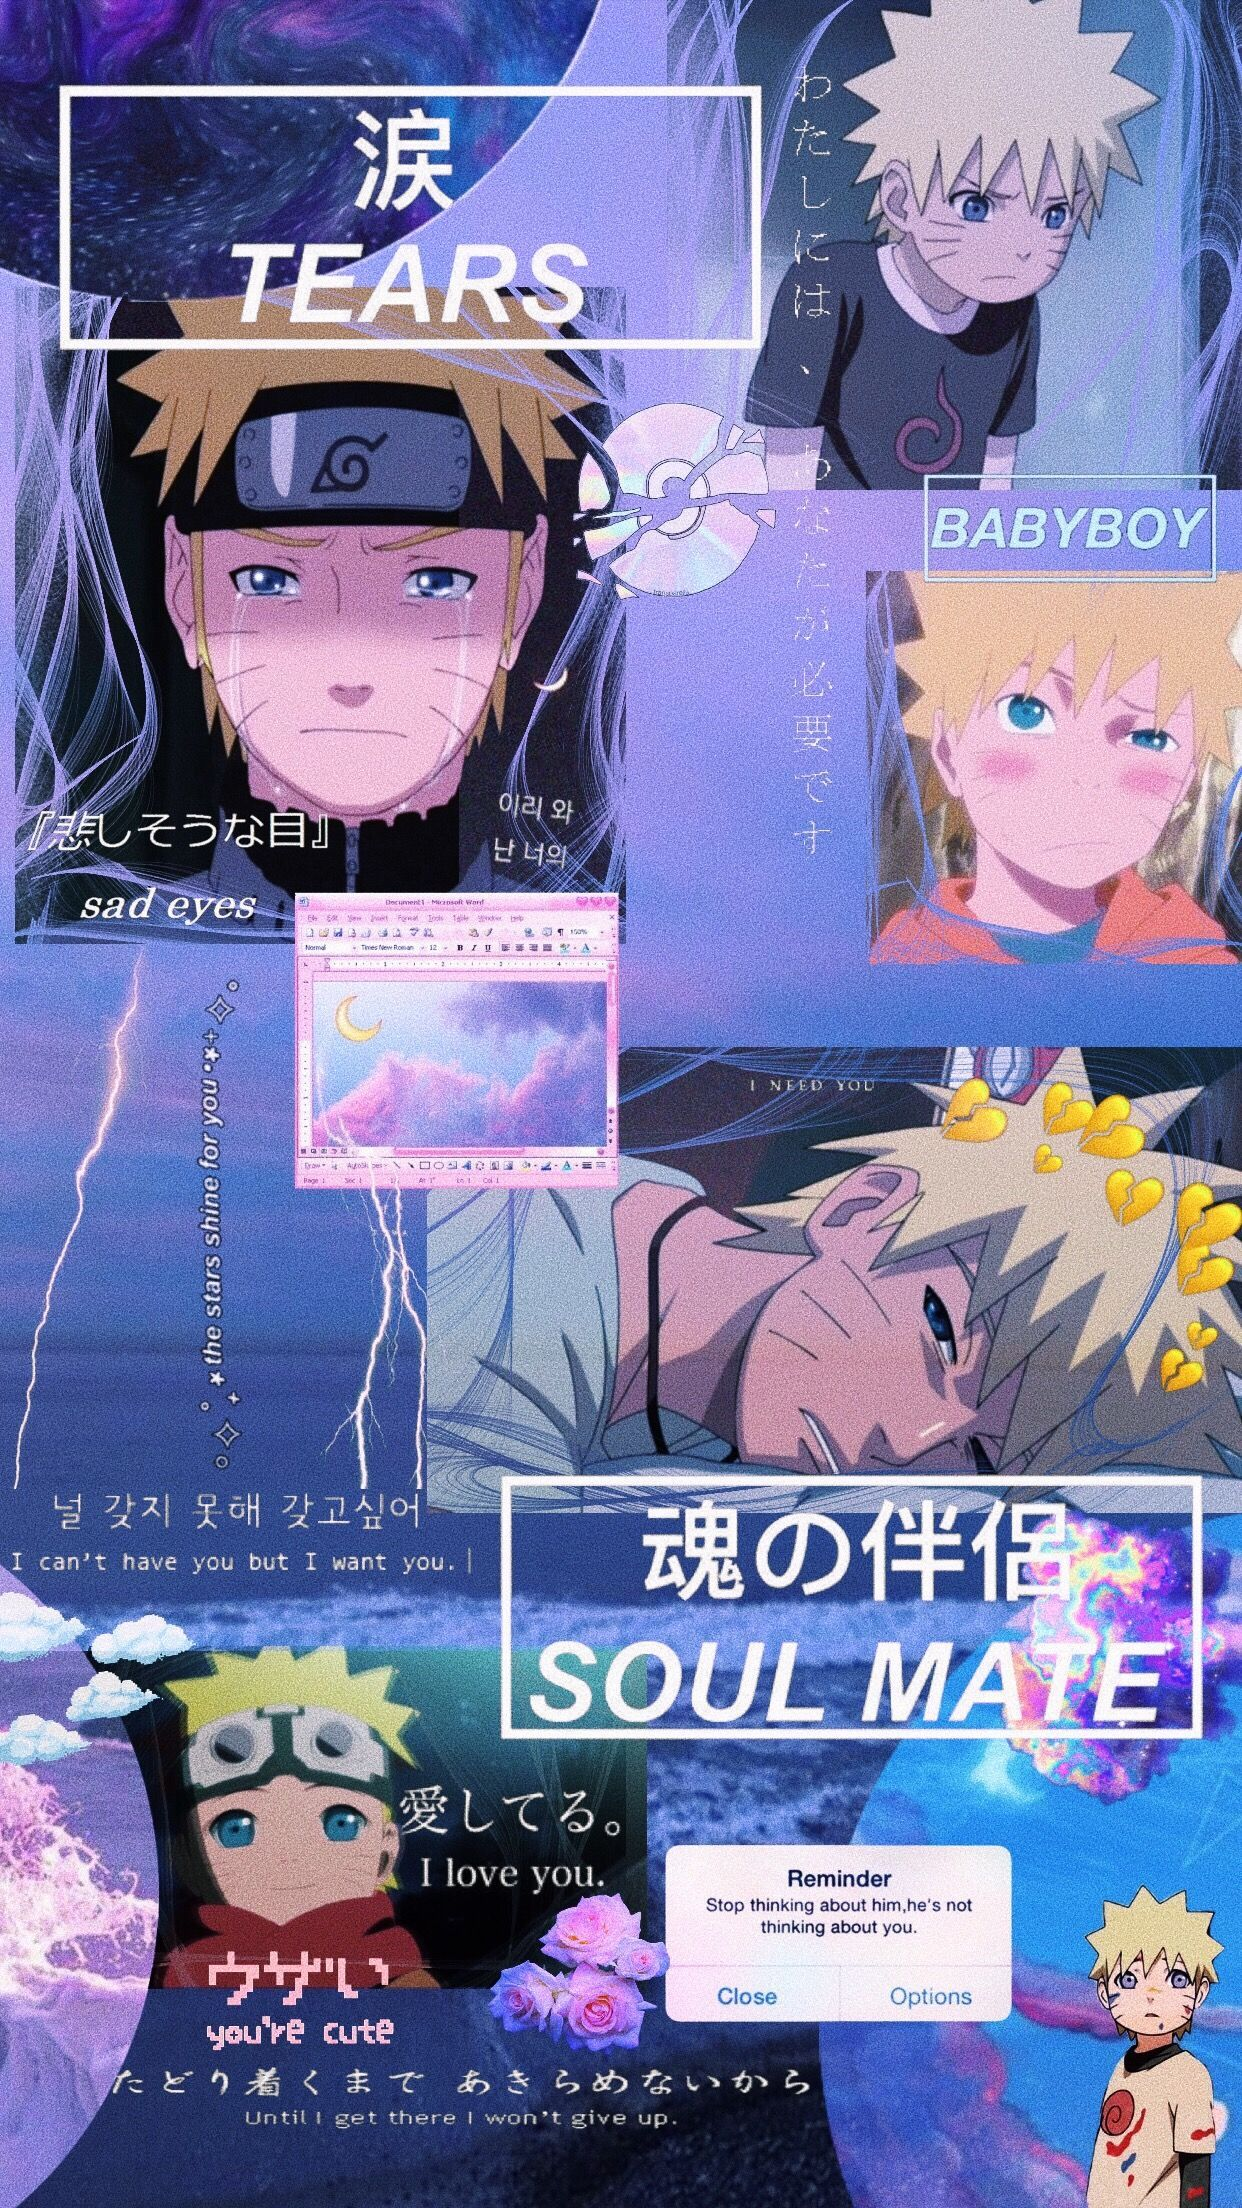 Naruto Anime Narutoshippuden Aesthetic Edit Wallpaper Narutowallpaper Wallpaper Naruto Shippuden Cute Anime Wallpaper Anime Wallpaper Iphone